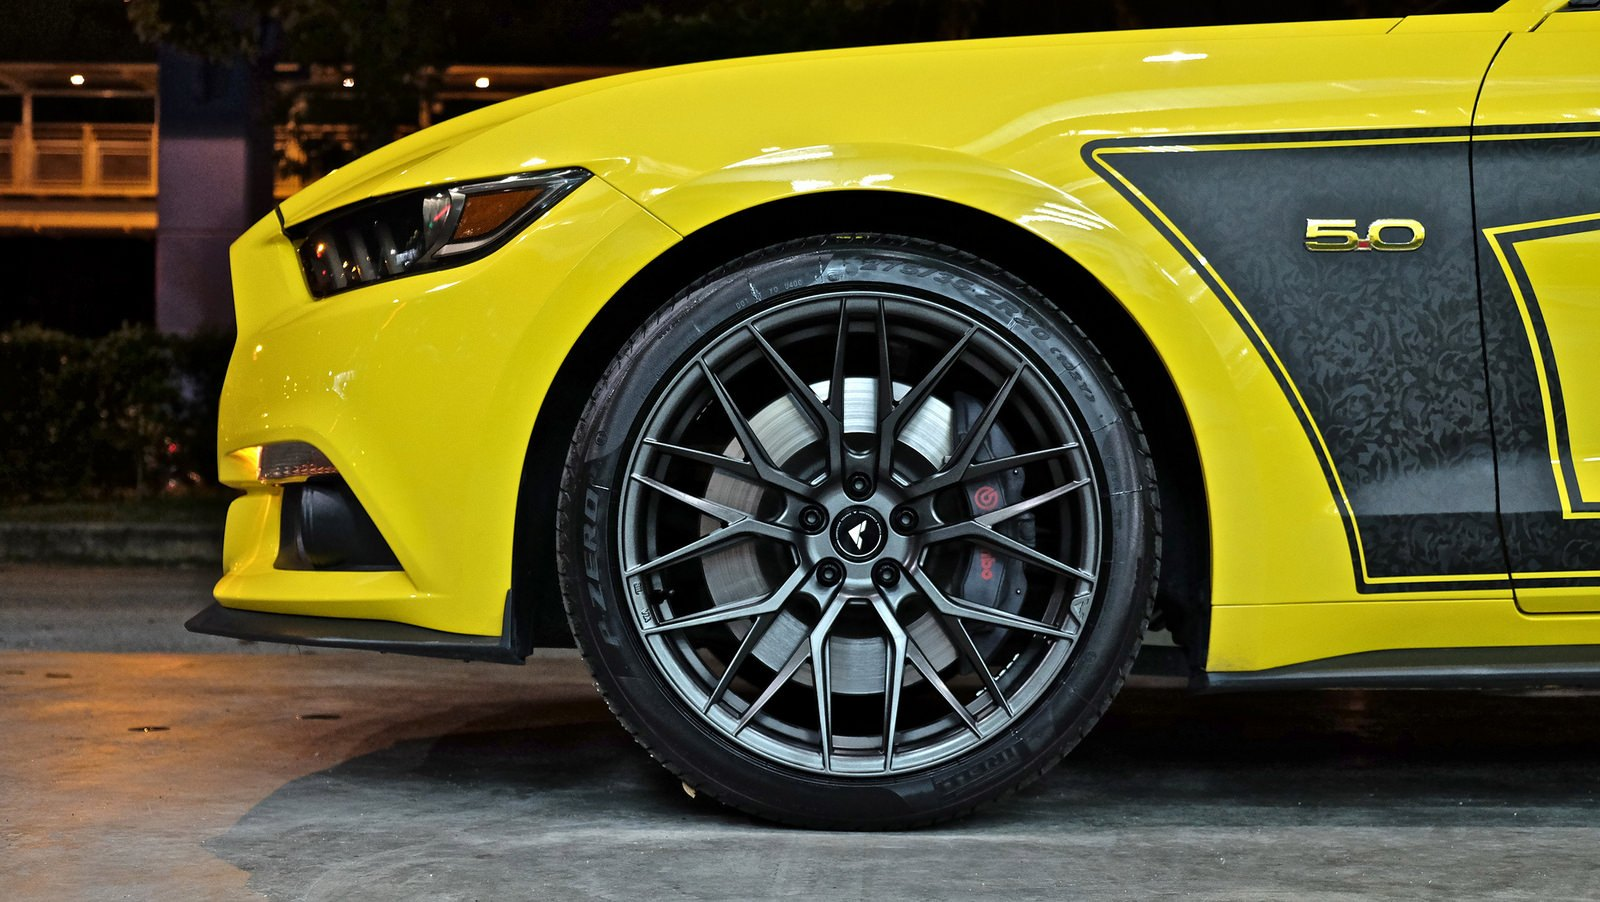 Vorsteiner Rims with Brembo Brakes on Yellow Ford Mustang - Photo by Vorsteiner